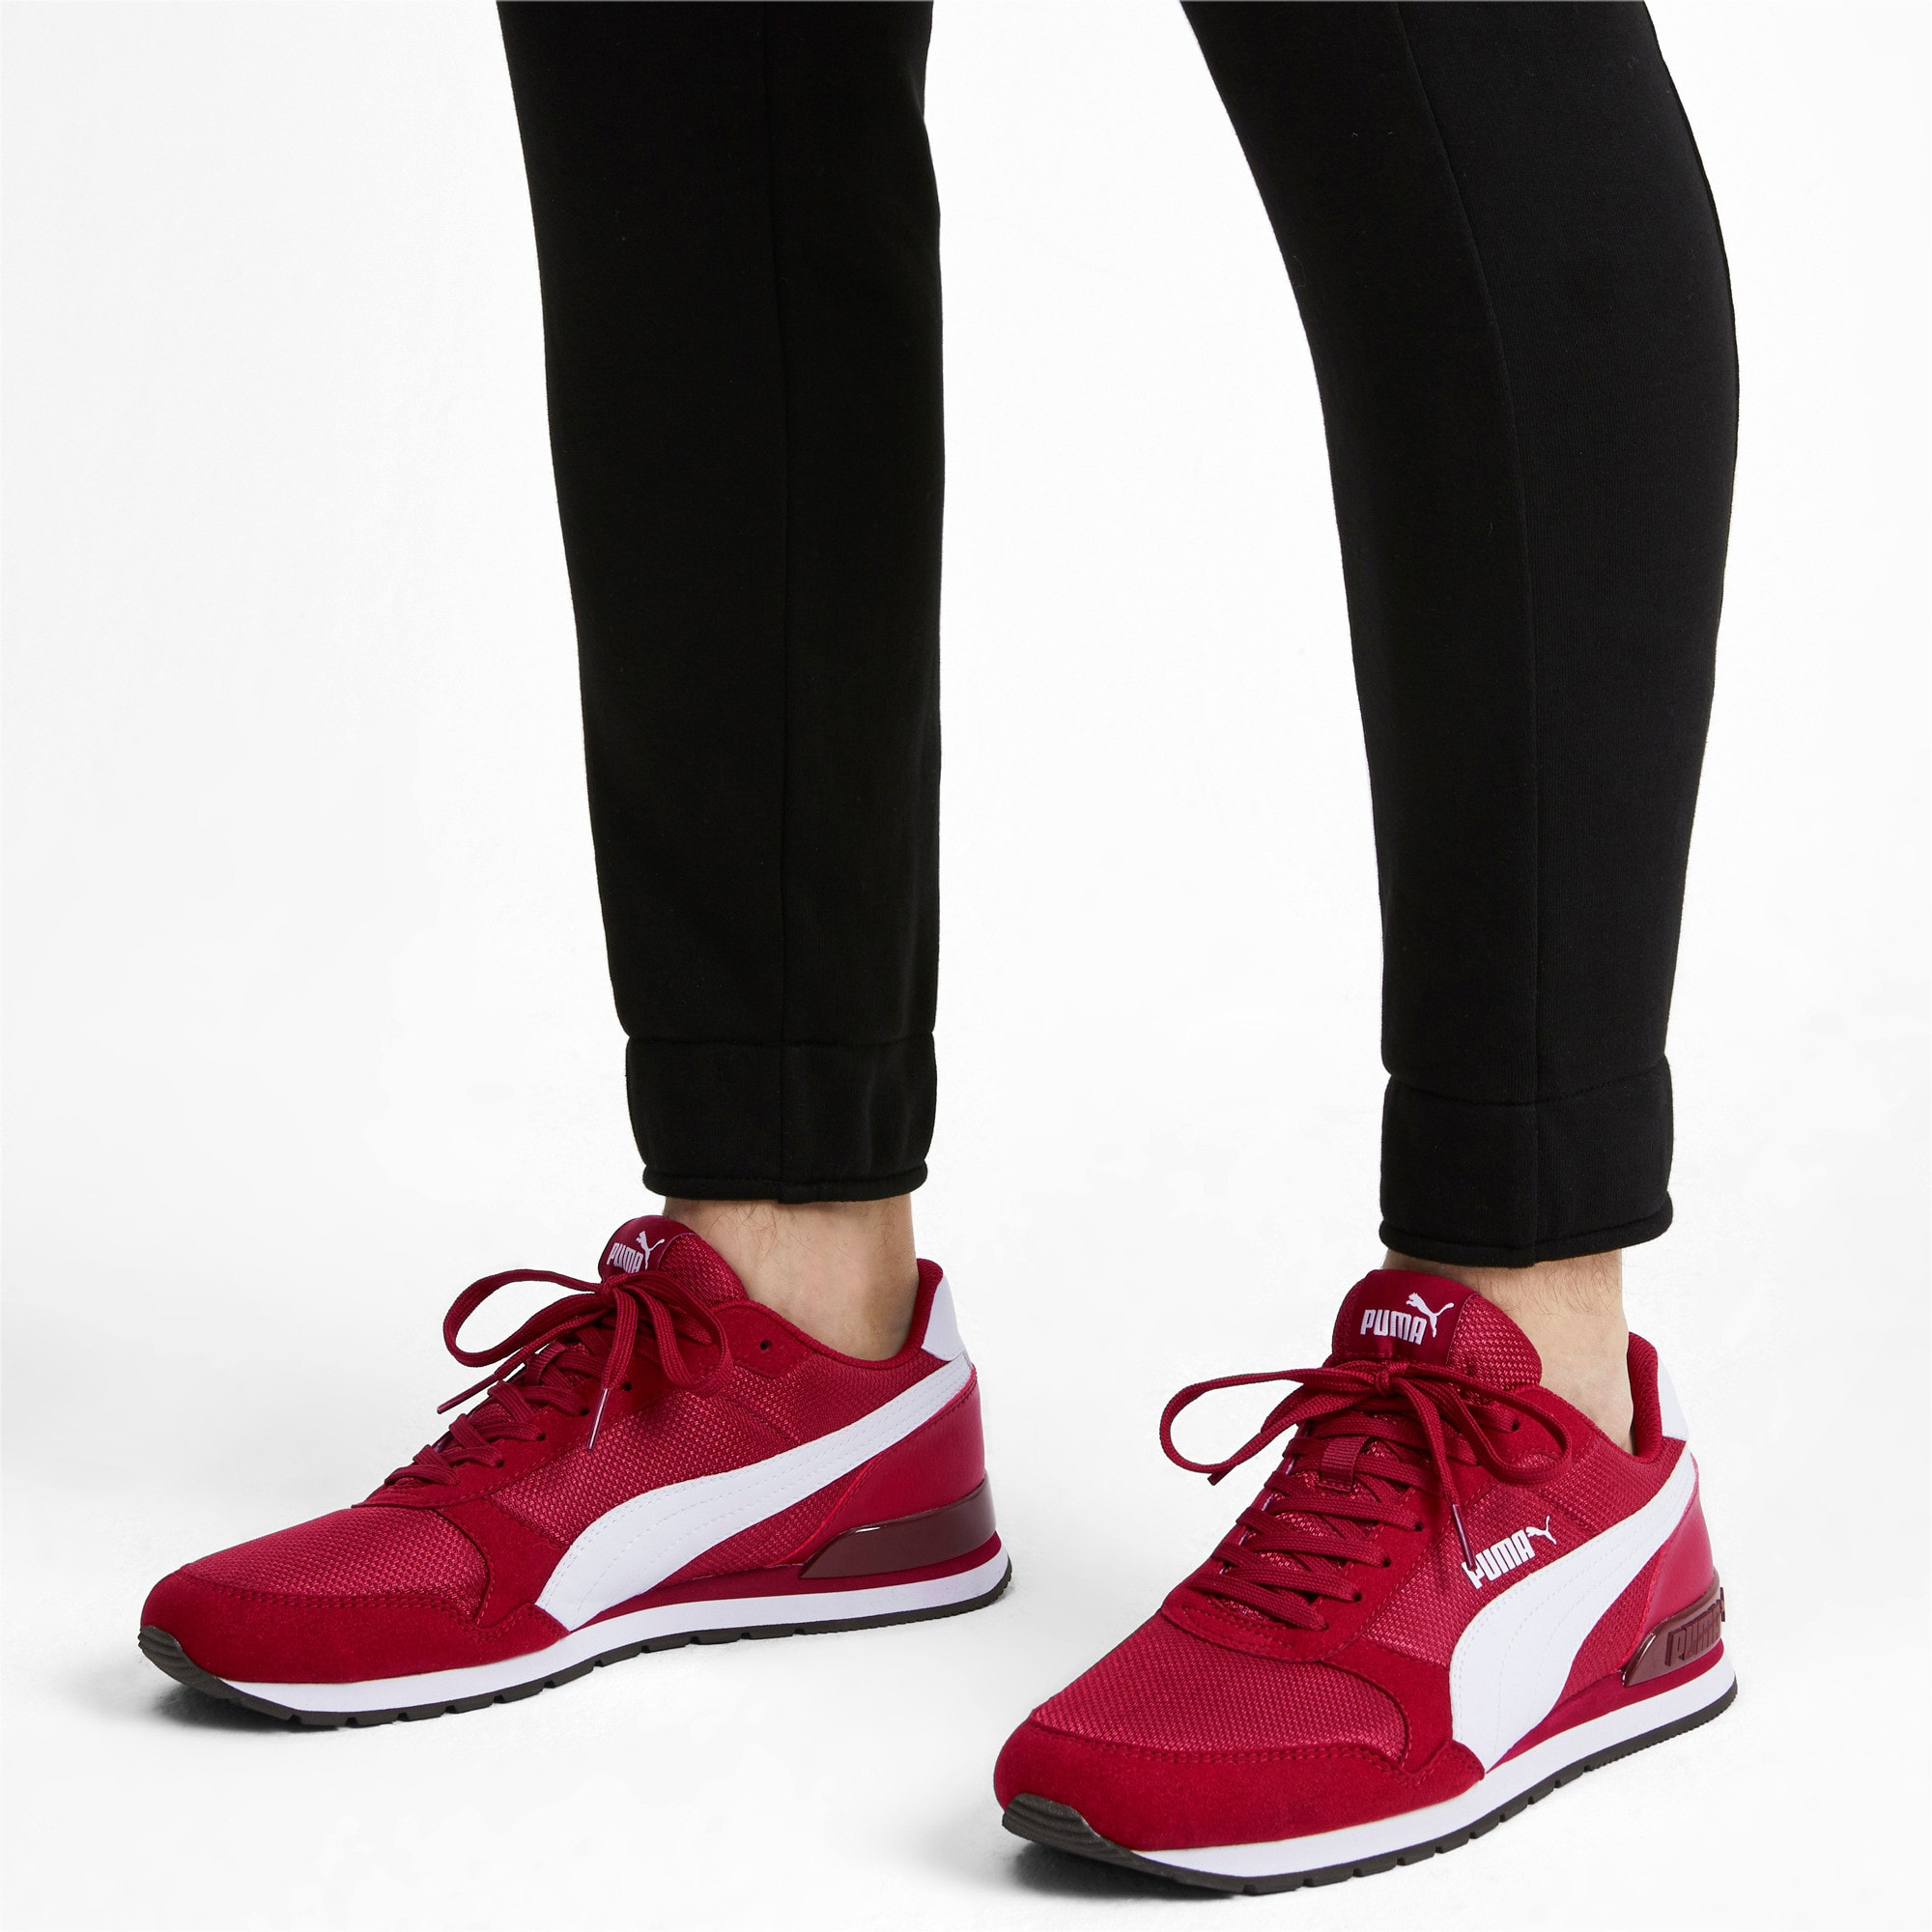 Thumbnail 2 of ST Runner v2 Mesh Sneakers, Rhubarb-Puma White, medium